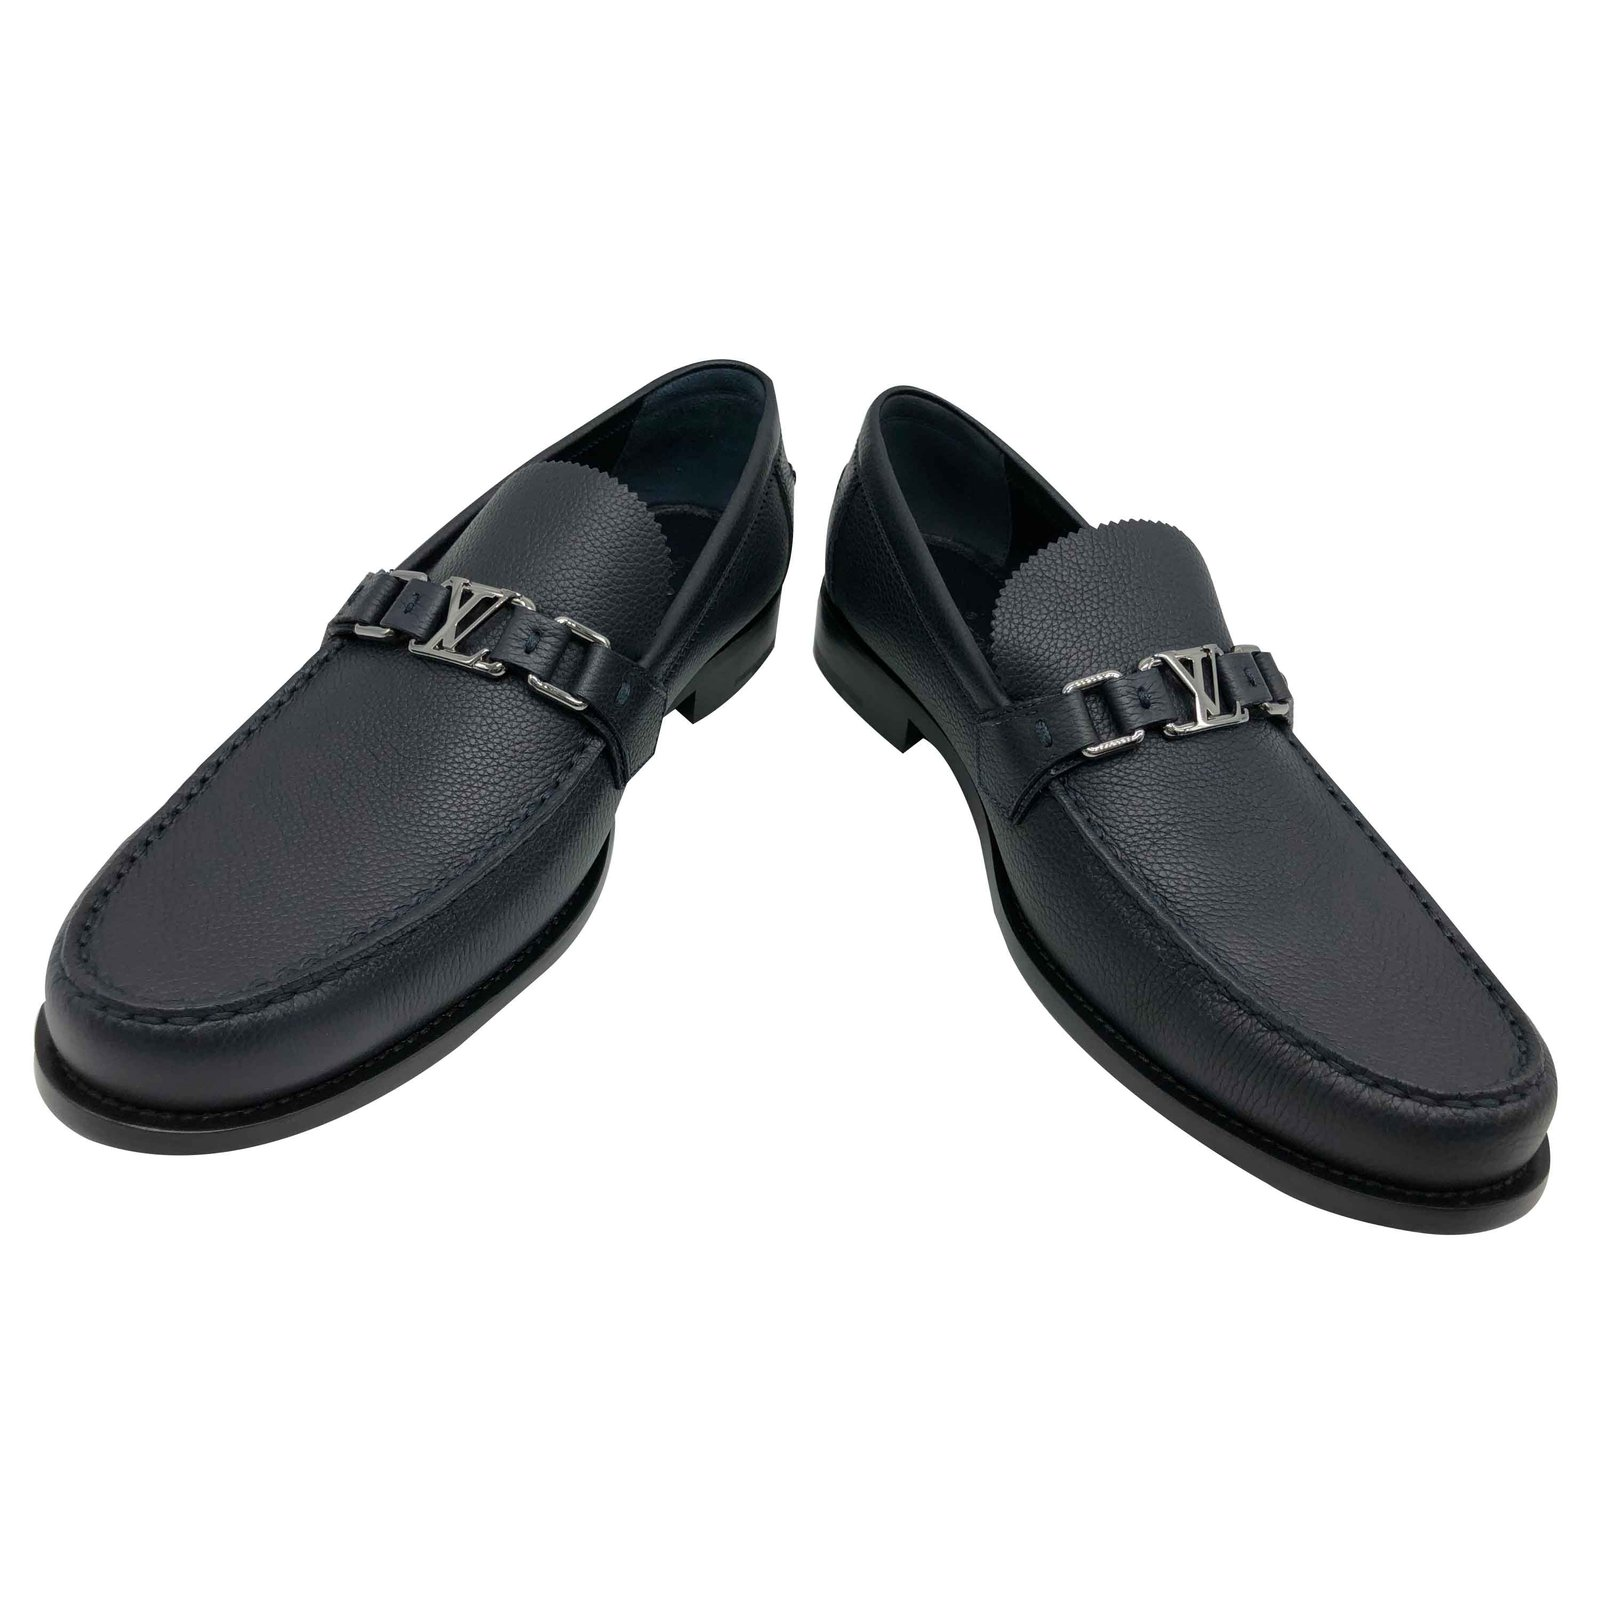 13765c0e2d3c Louis Vuitton Loafer Loafers Slip ons Leather Navy blue ref.92114 ...